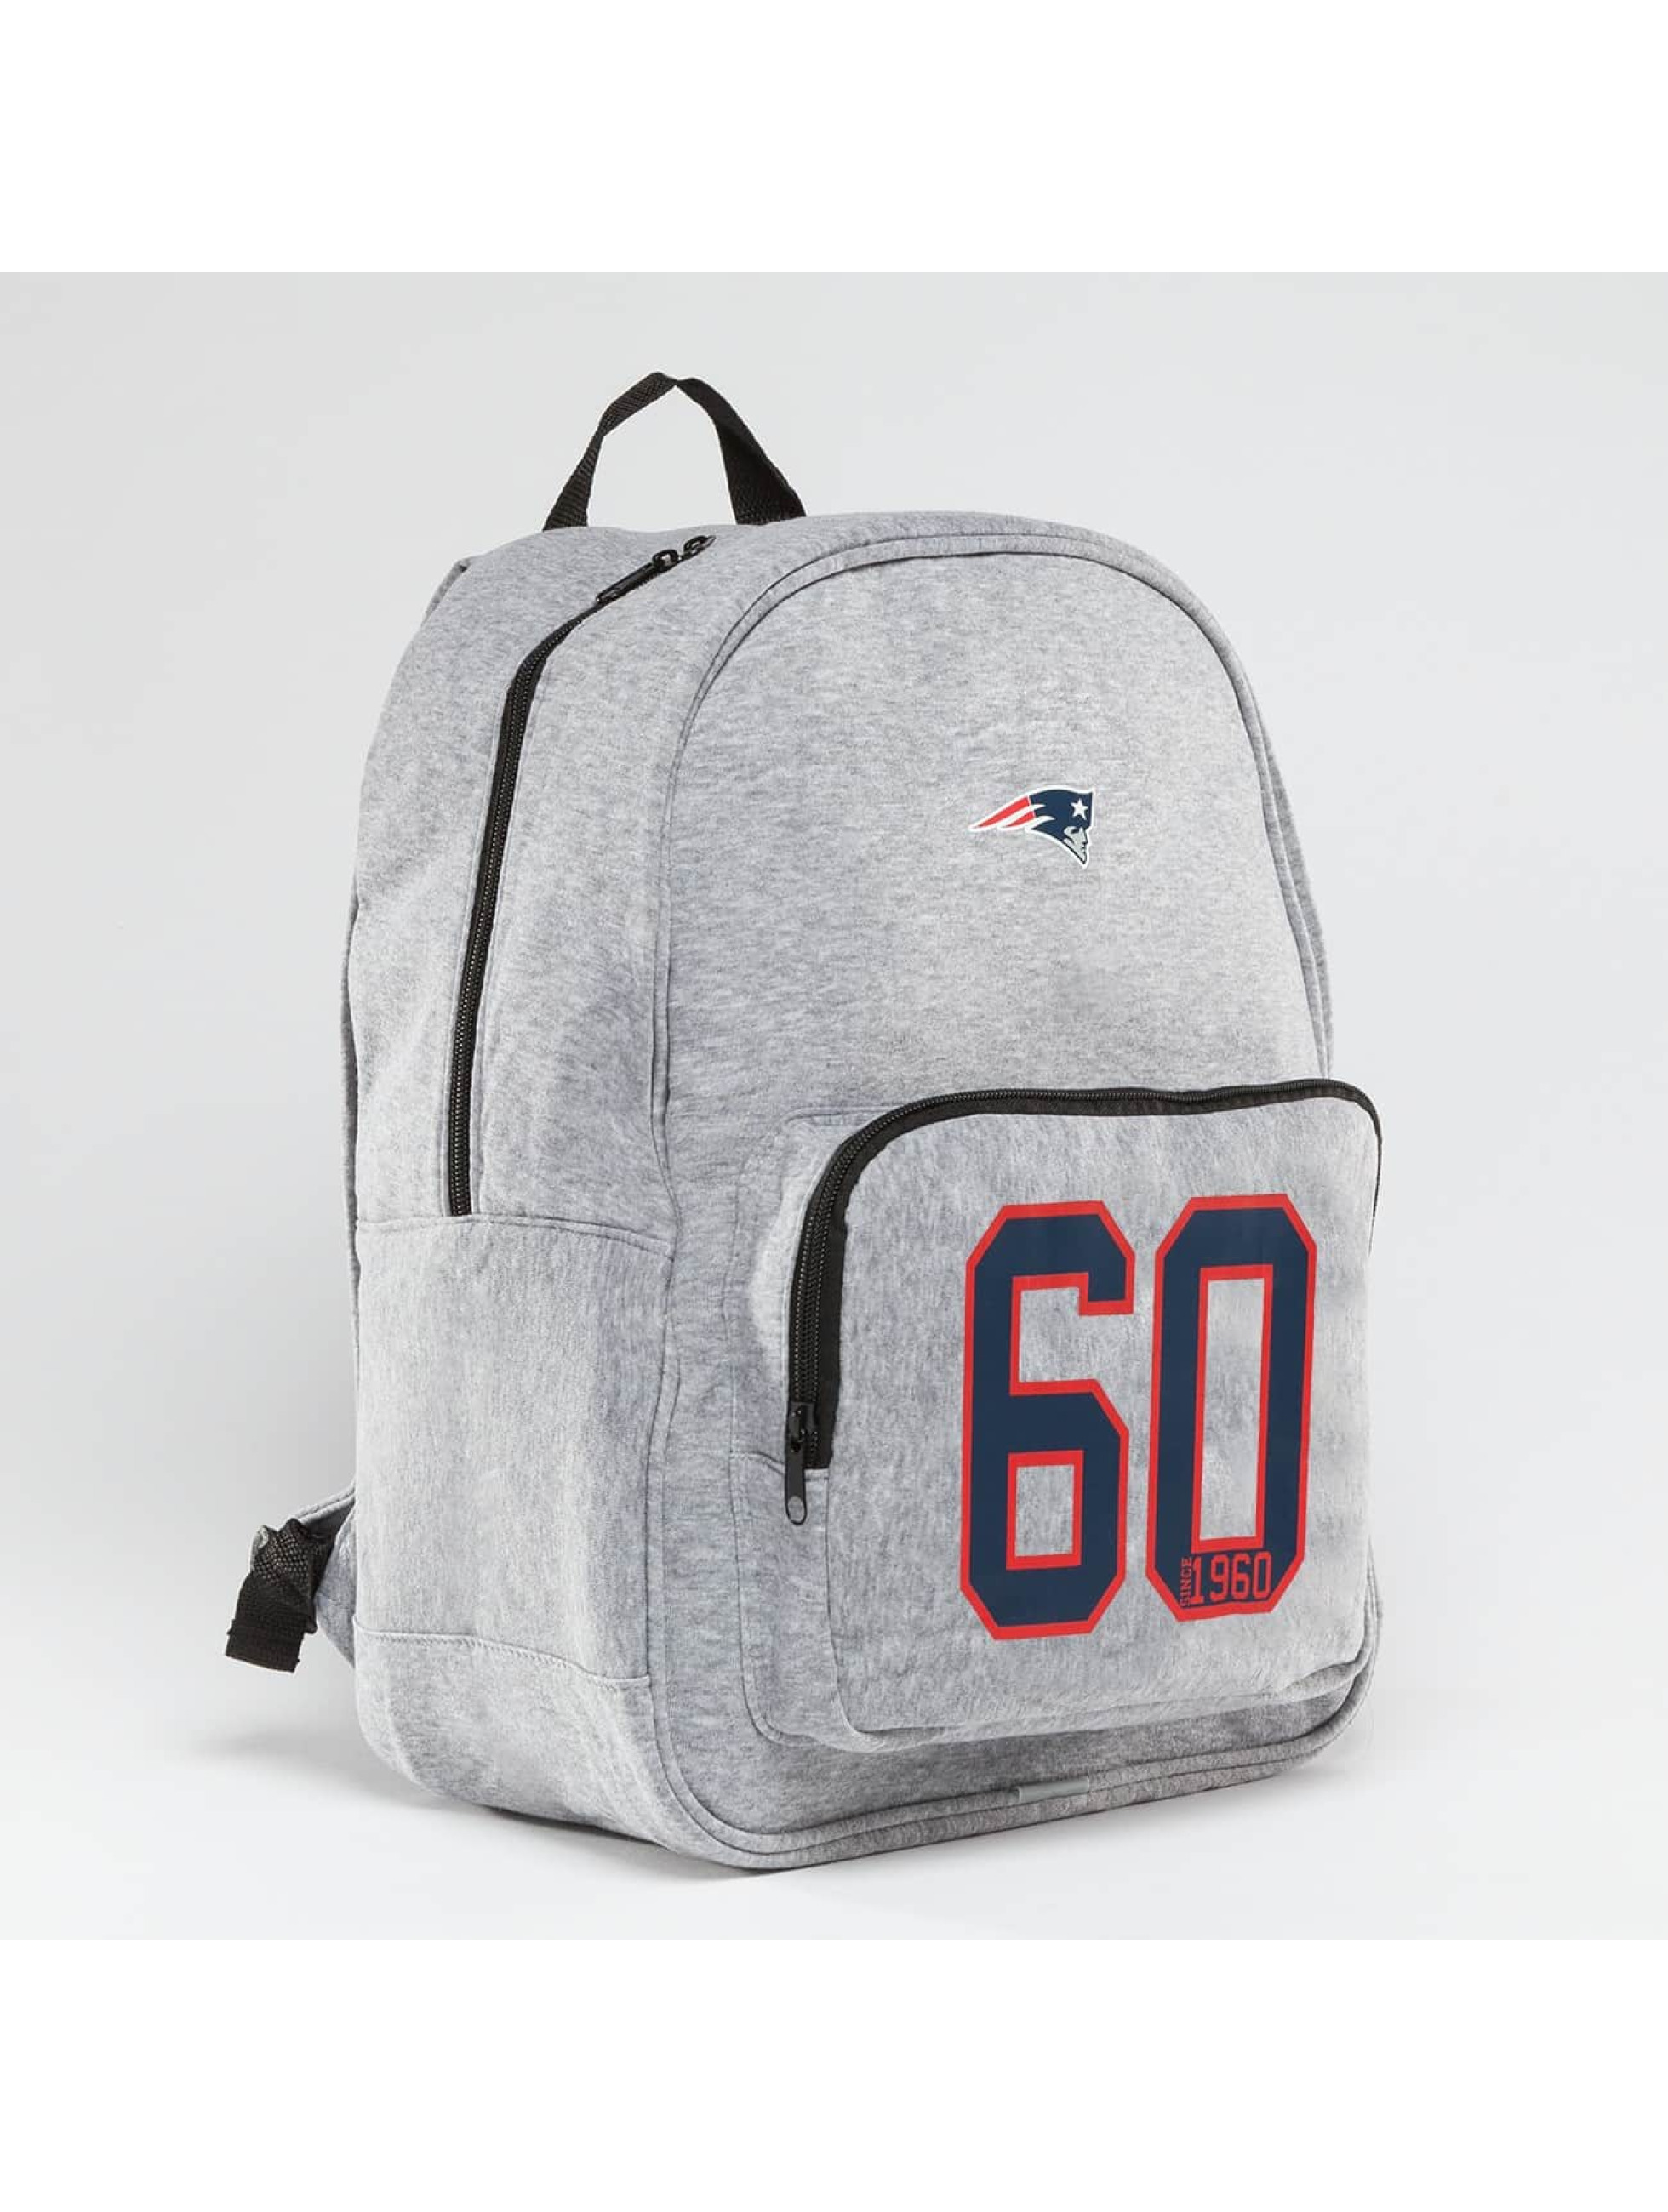 Forever Collectibles Batohy NFL New England Patriots šedá